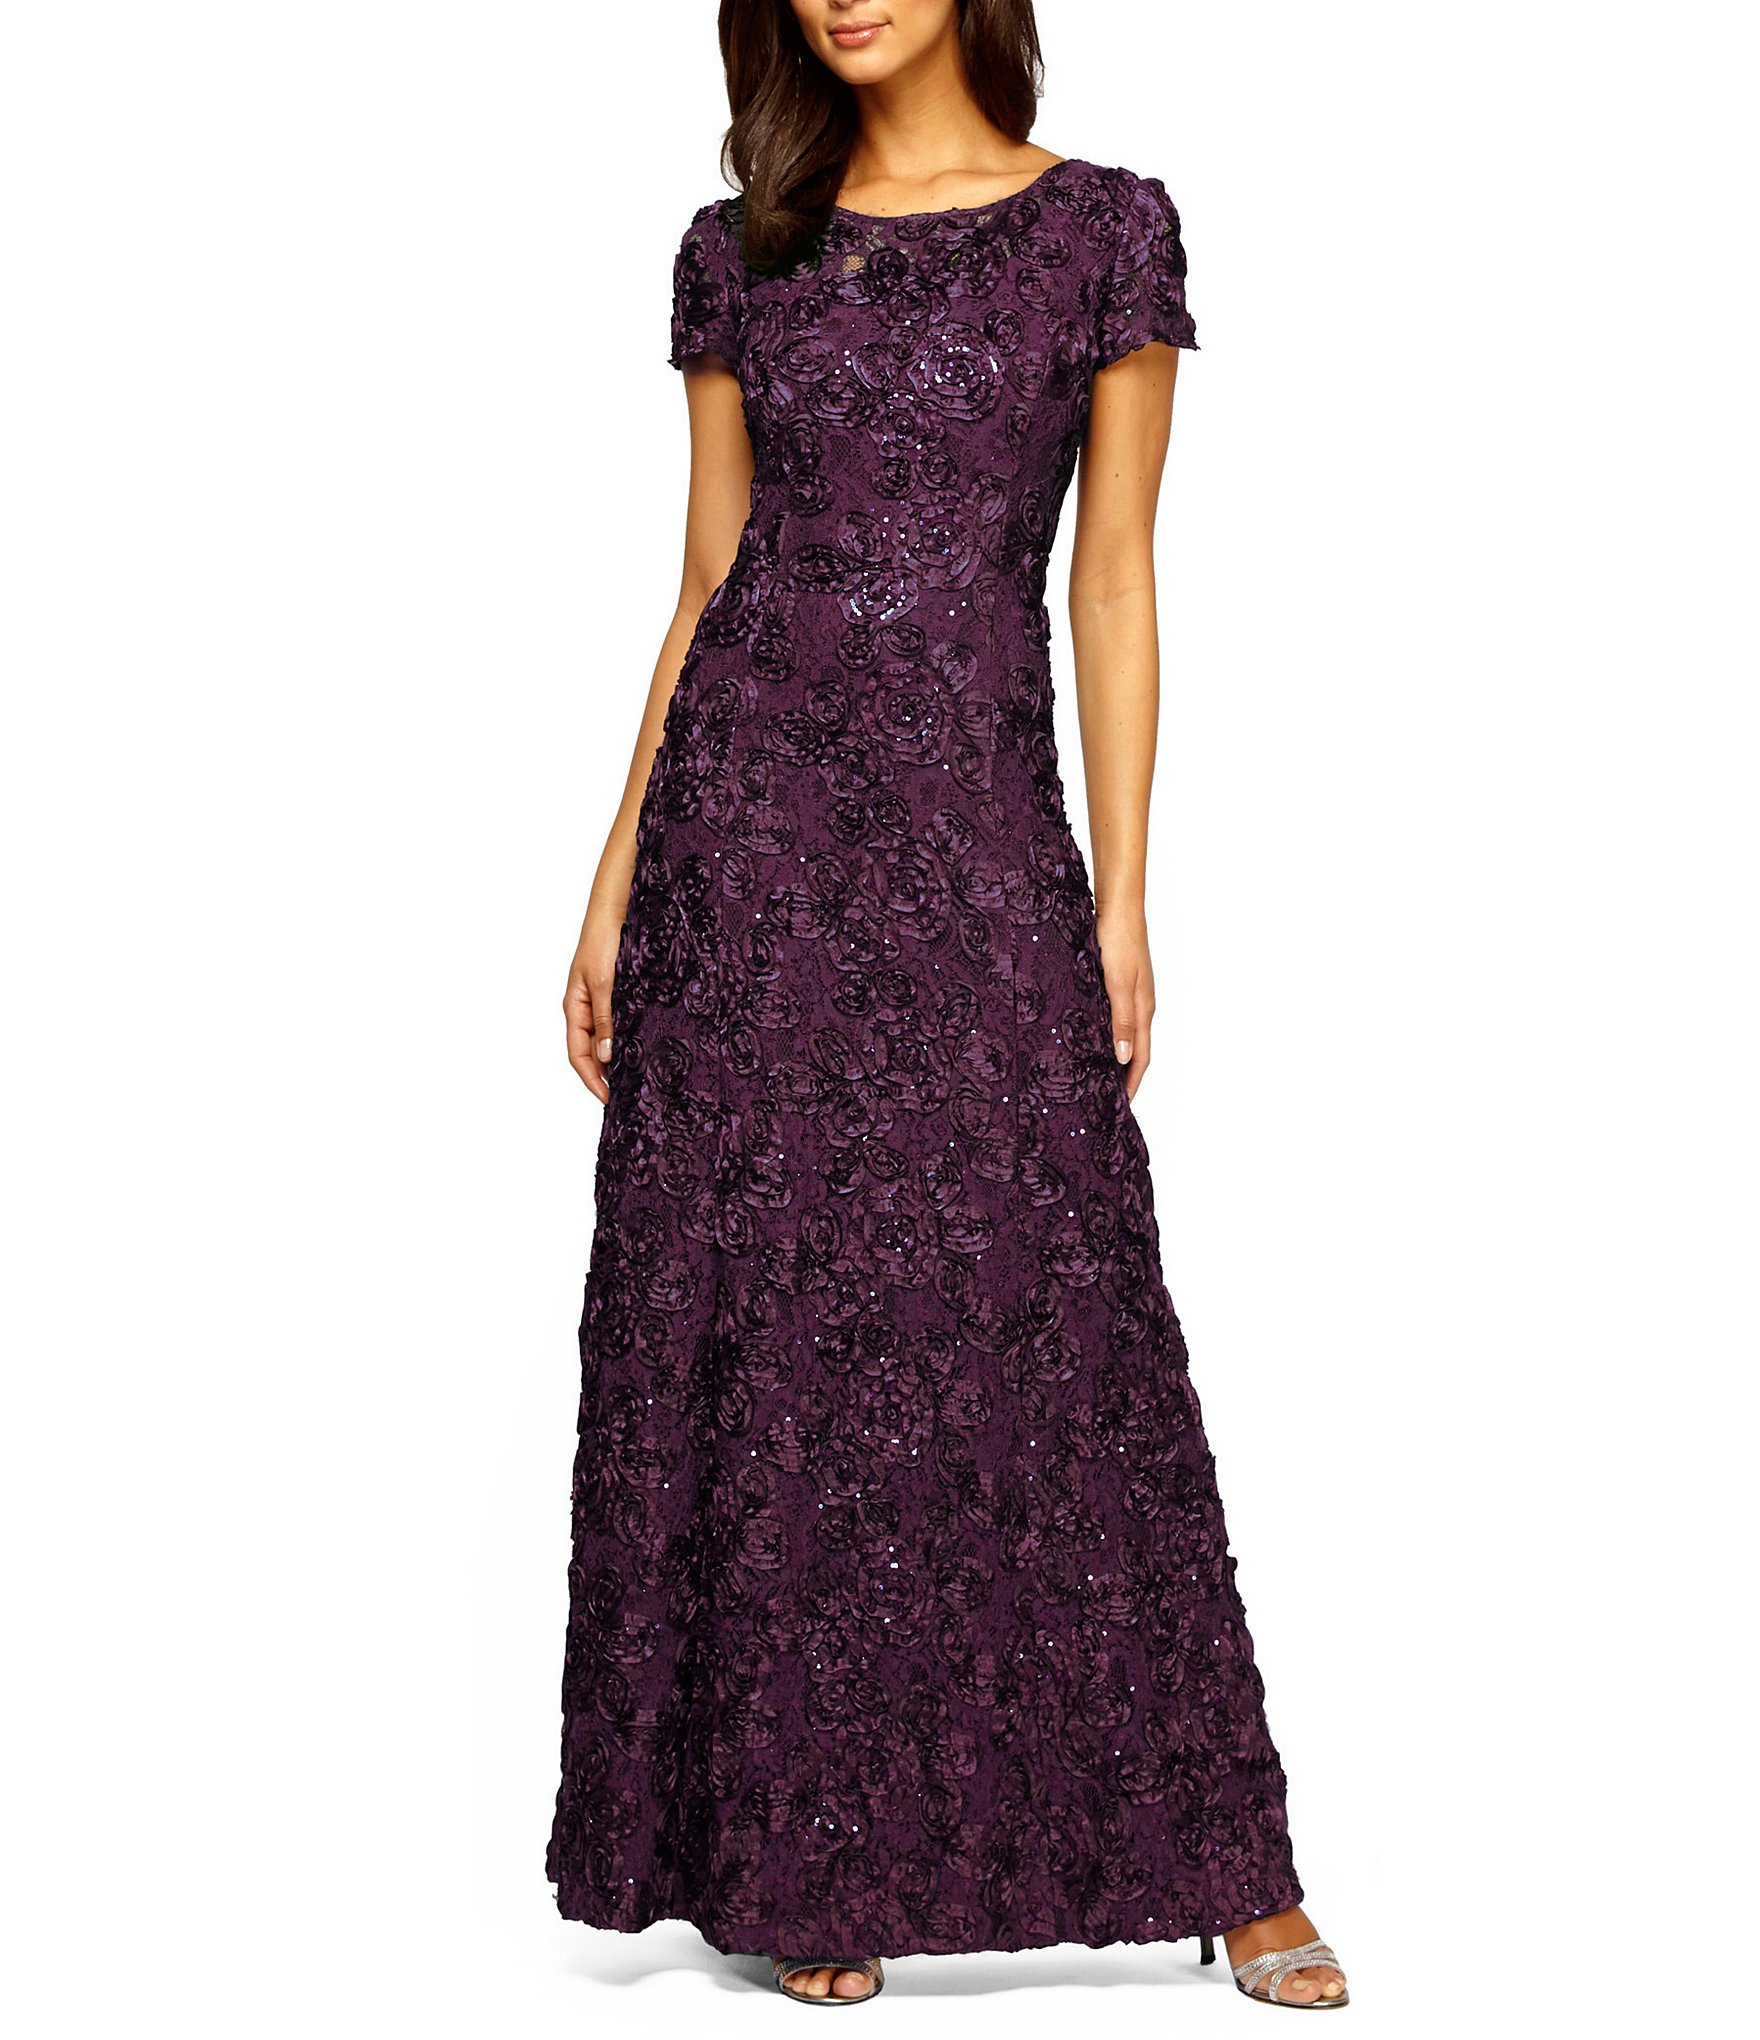 eggplant purple: Women\'s Dresses & Gowns | Dillards.com